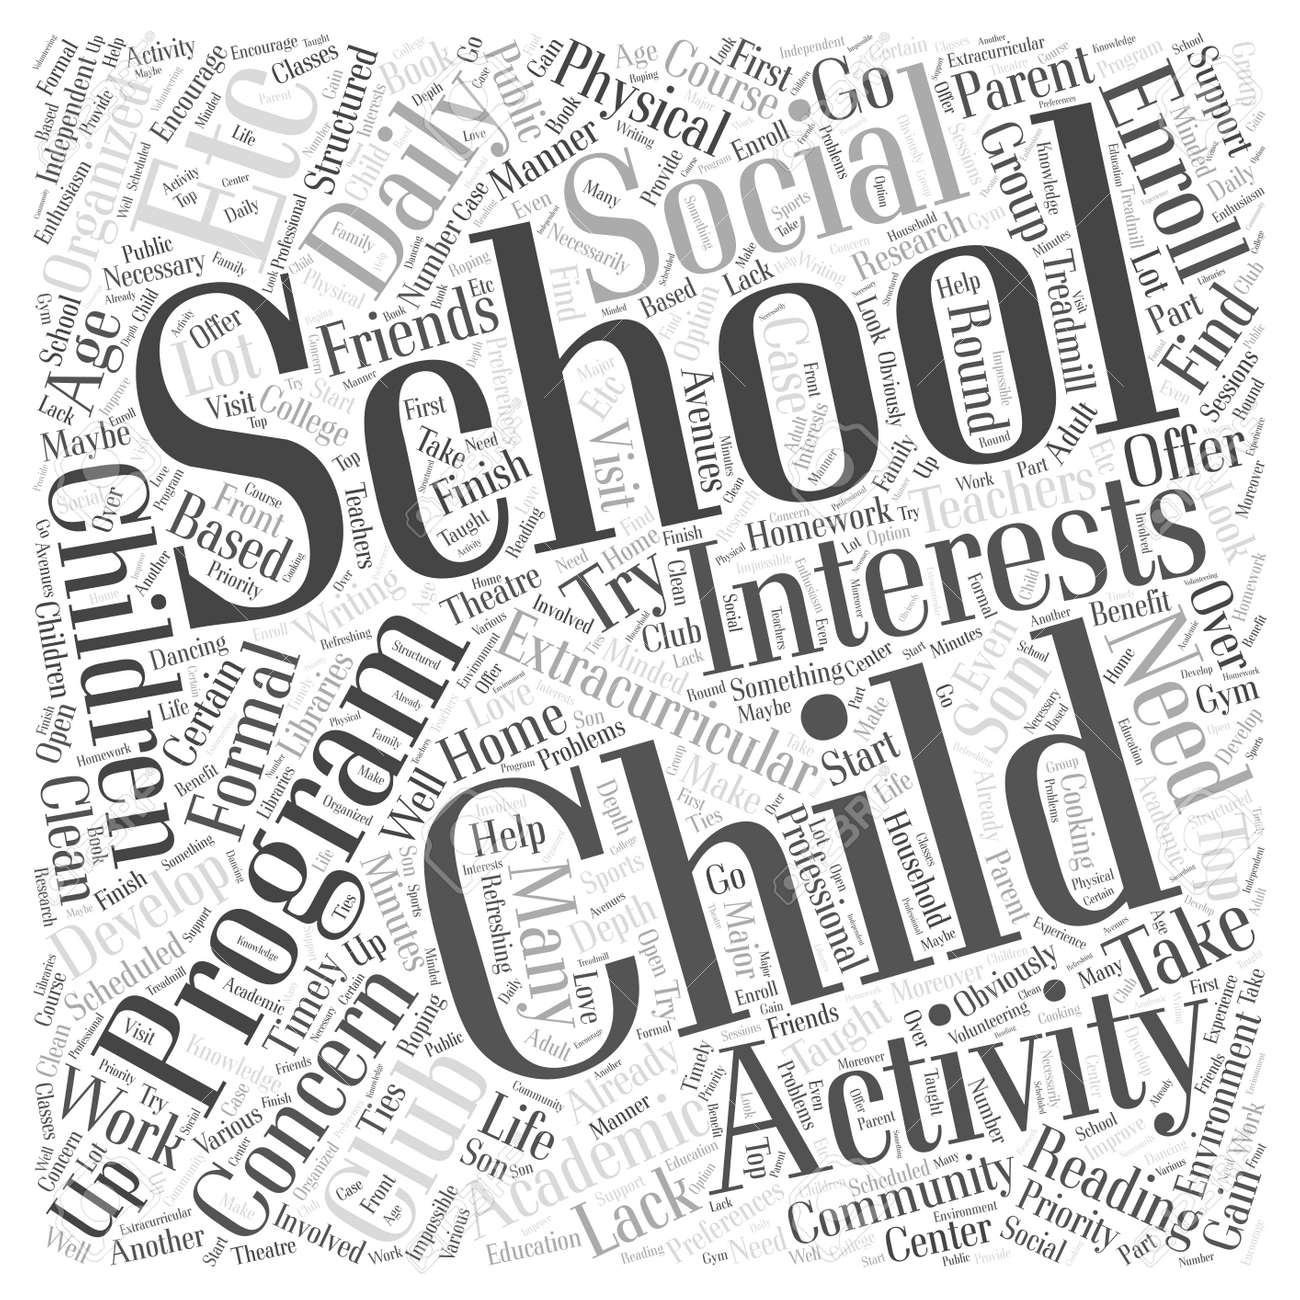 a home based after school program word cloud concept royalty free